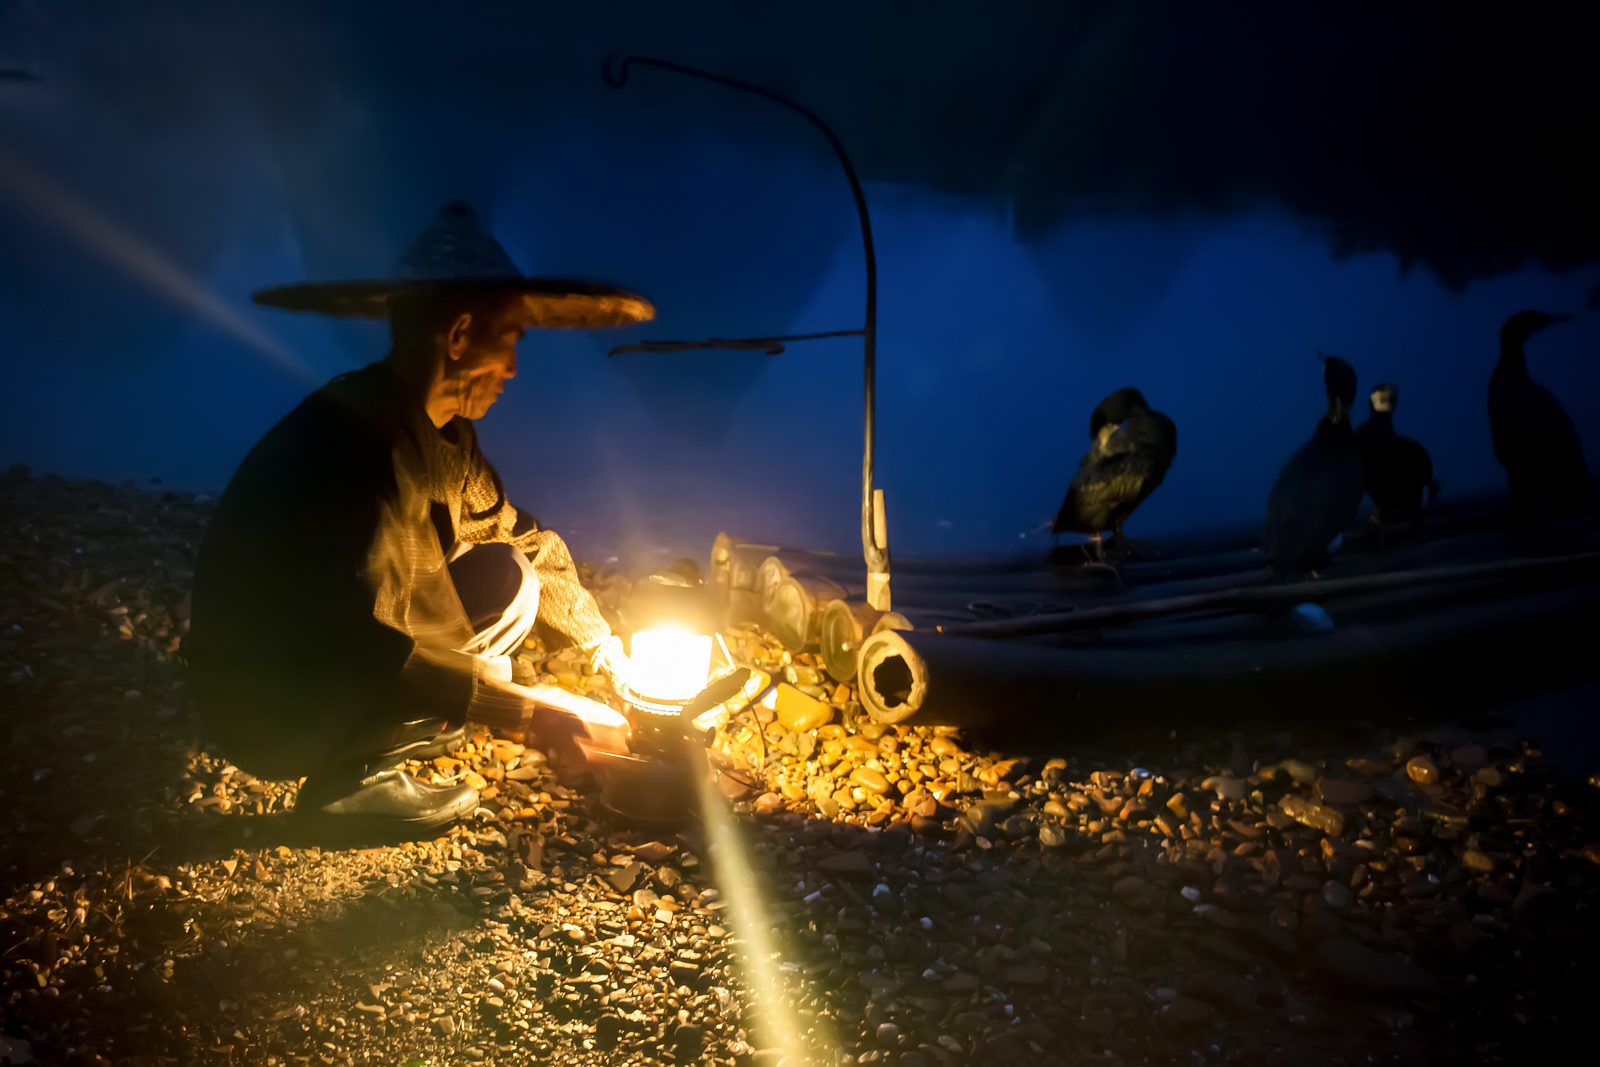 The Fisherman and The Lamp